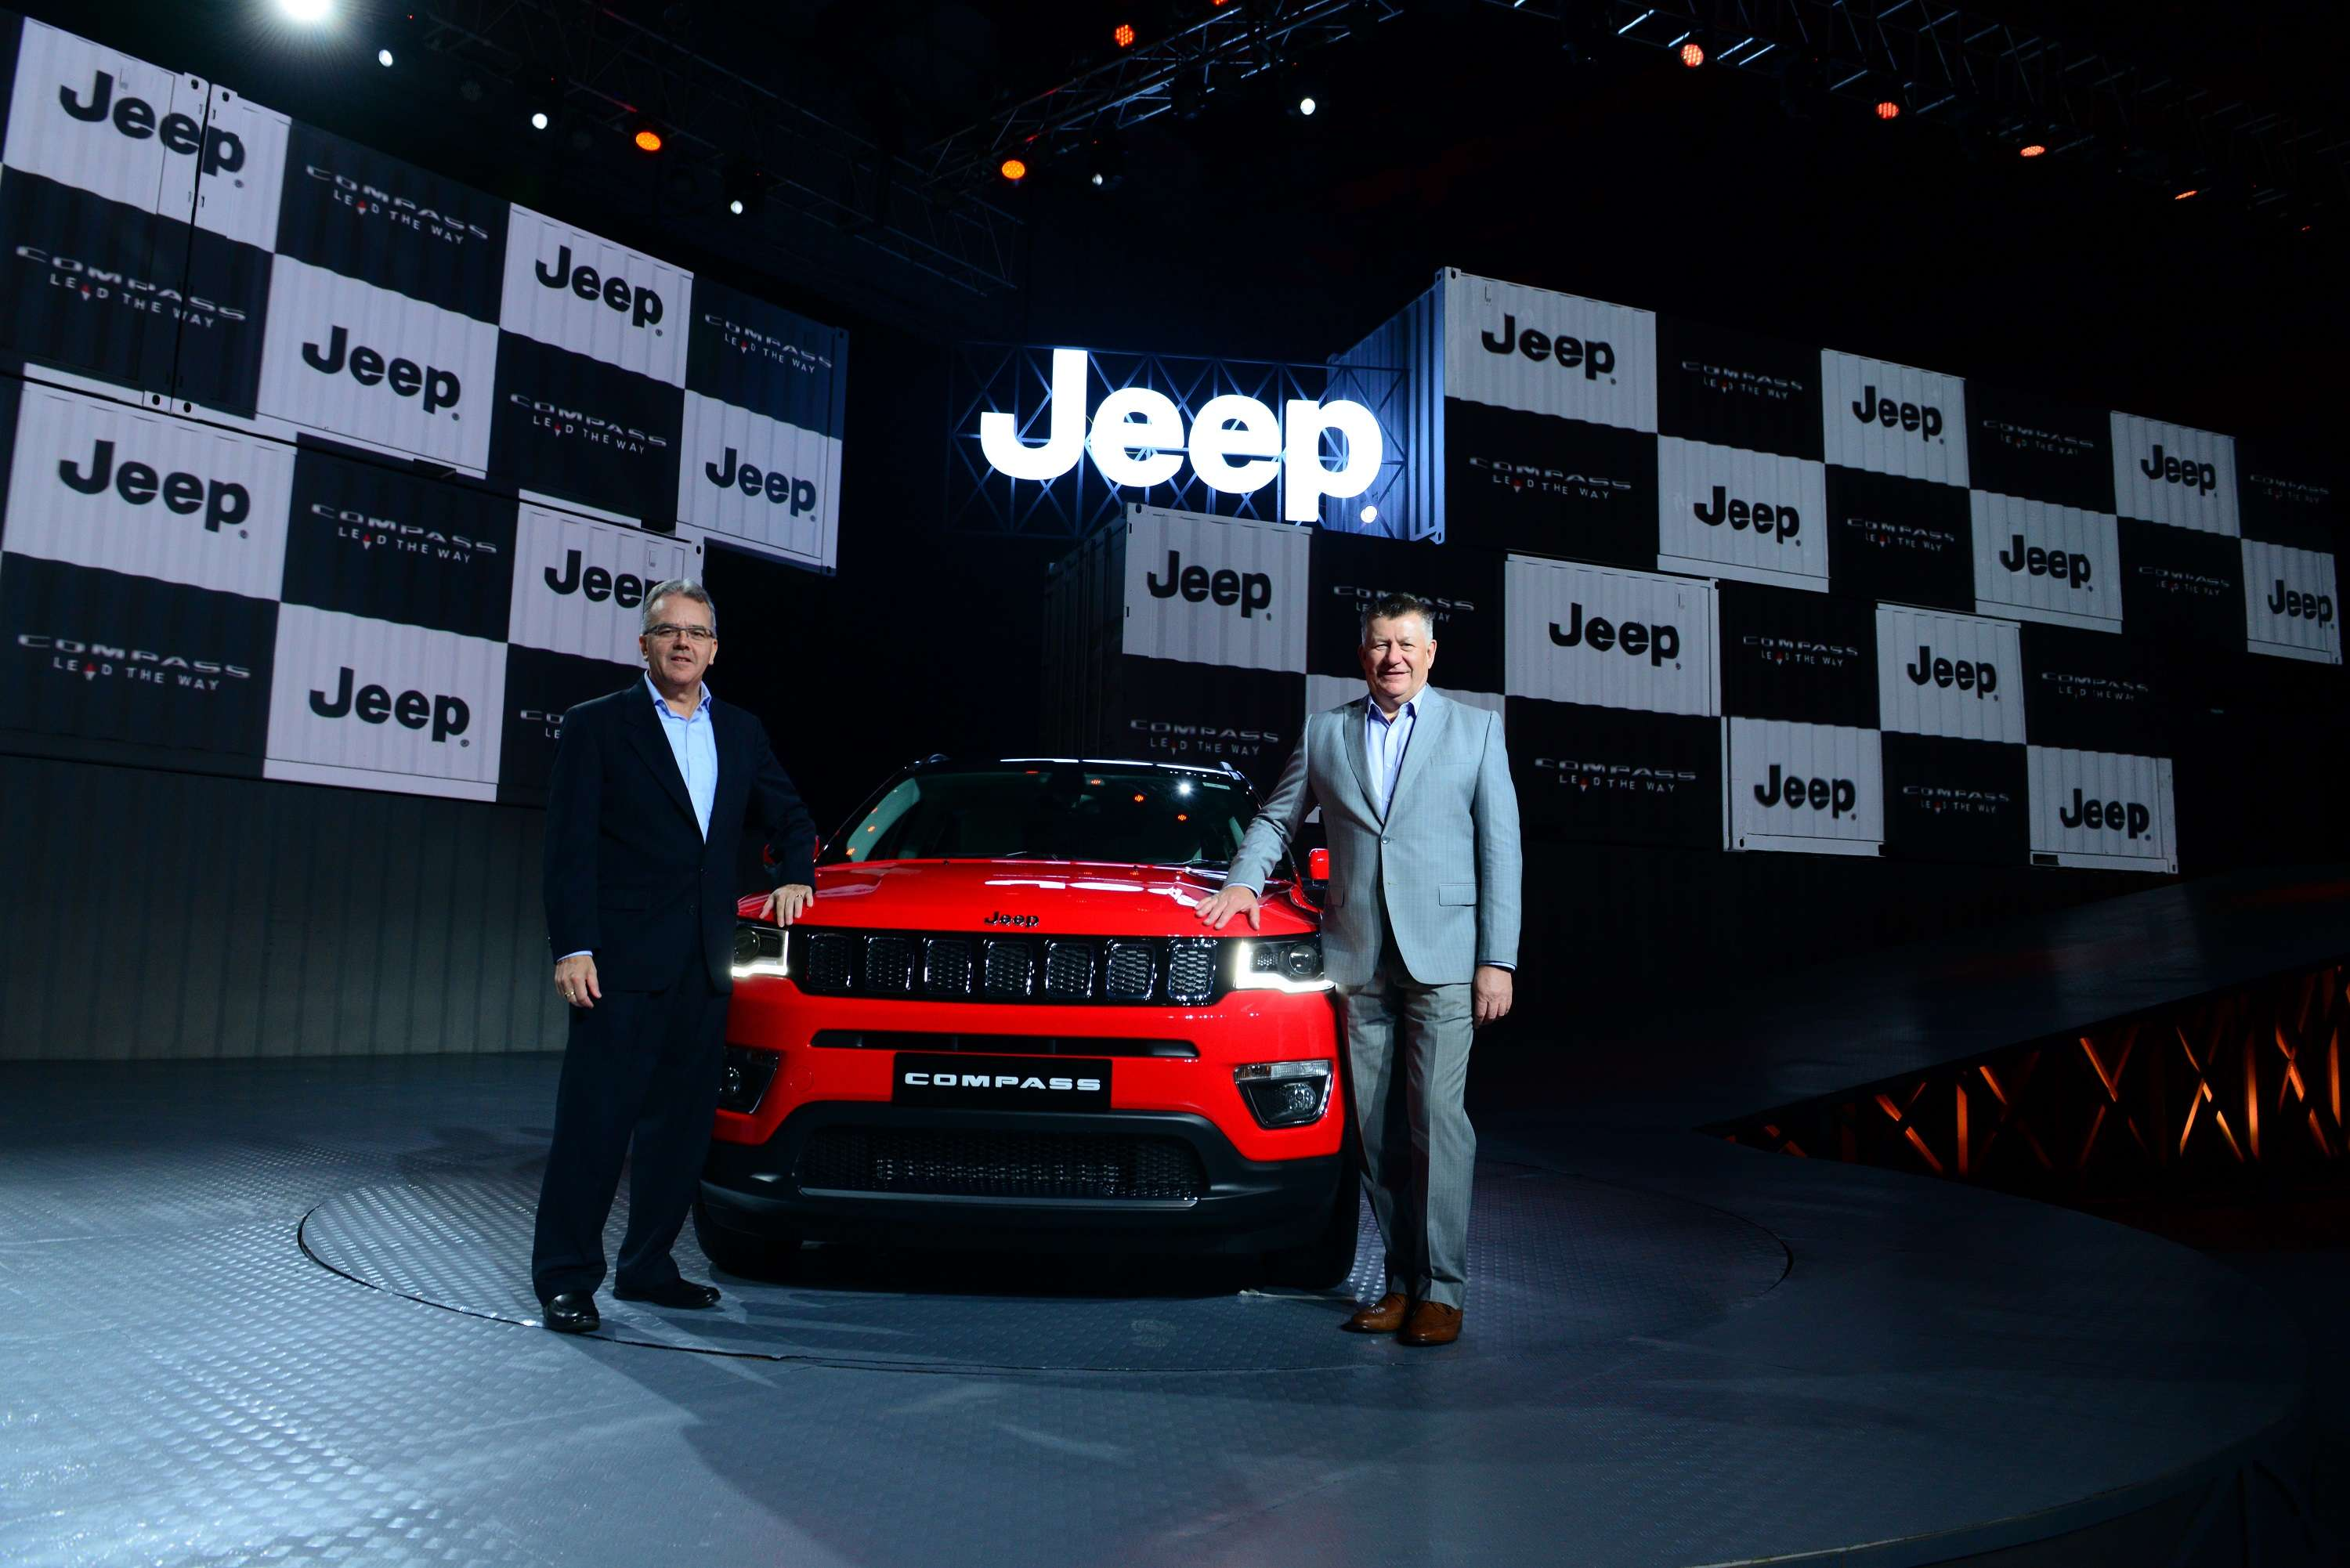 Jeep Compass Price Jeep Compass launched priced at Rs 1495 lakh